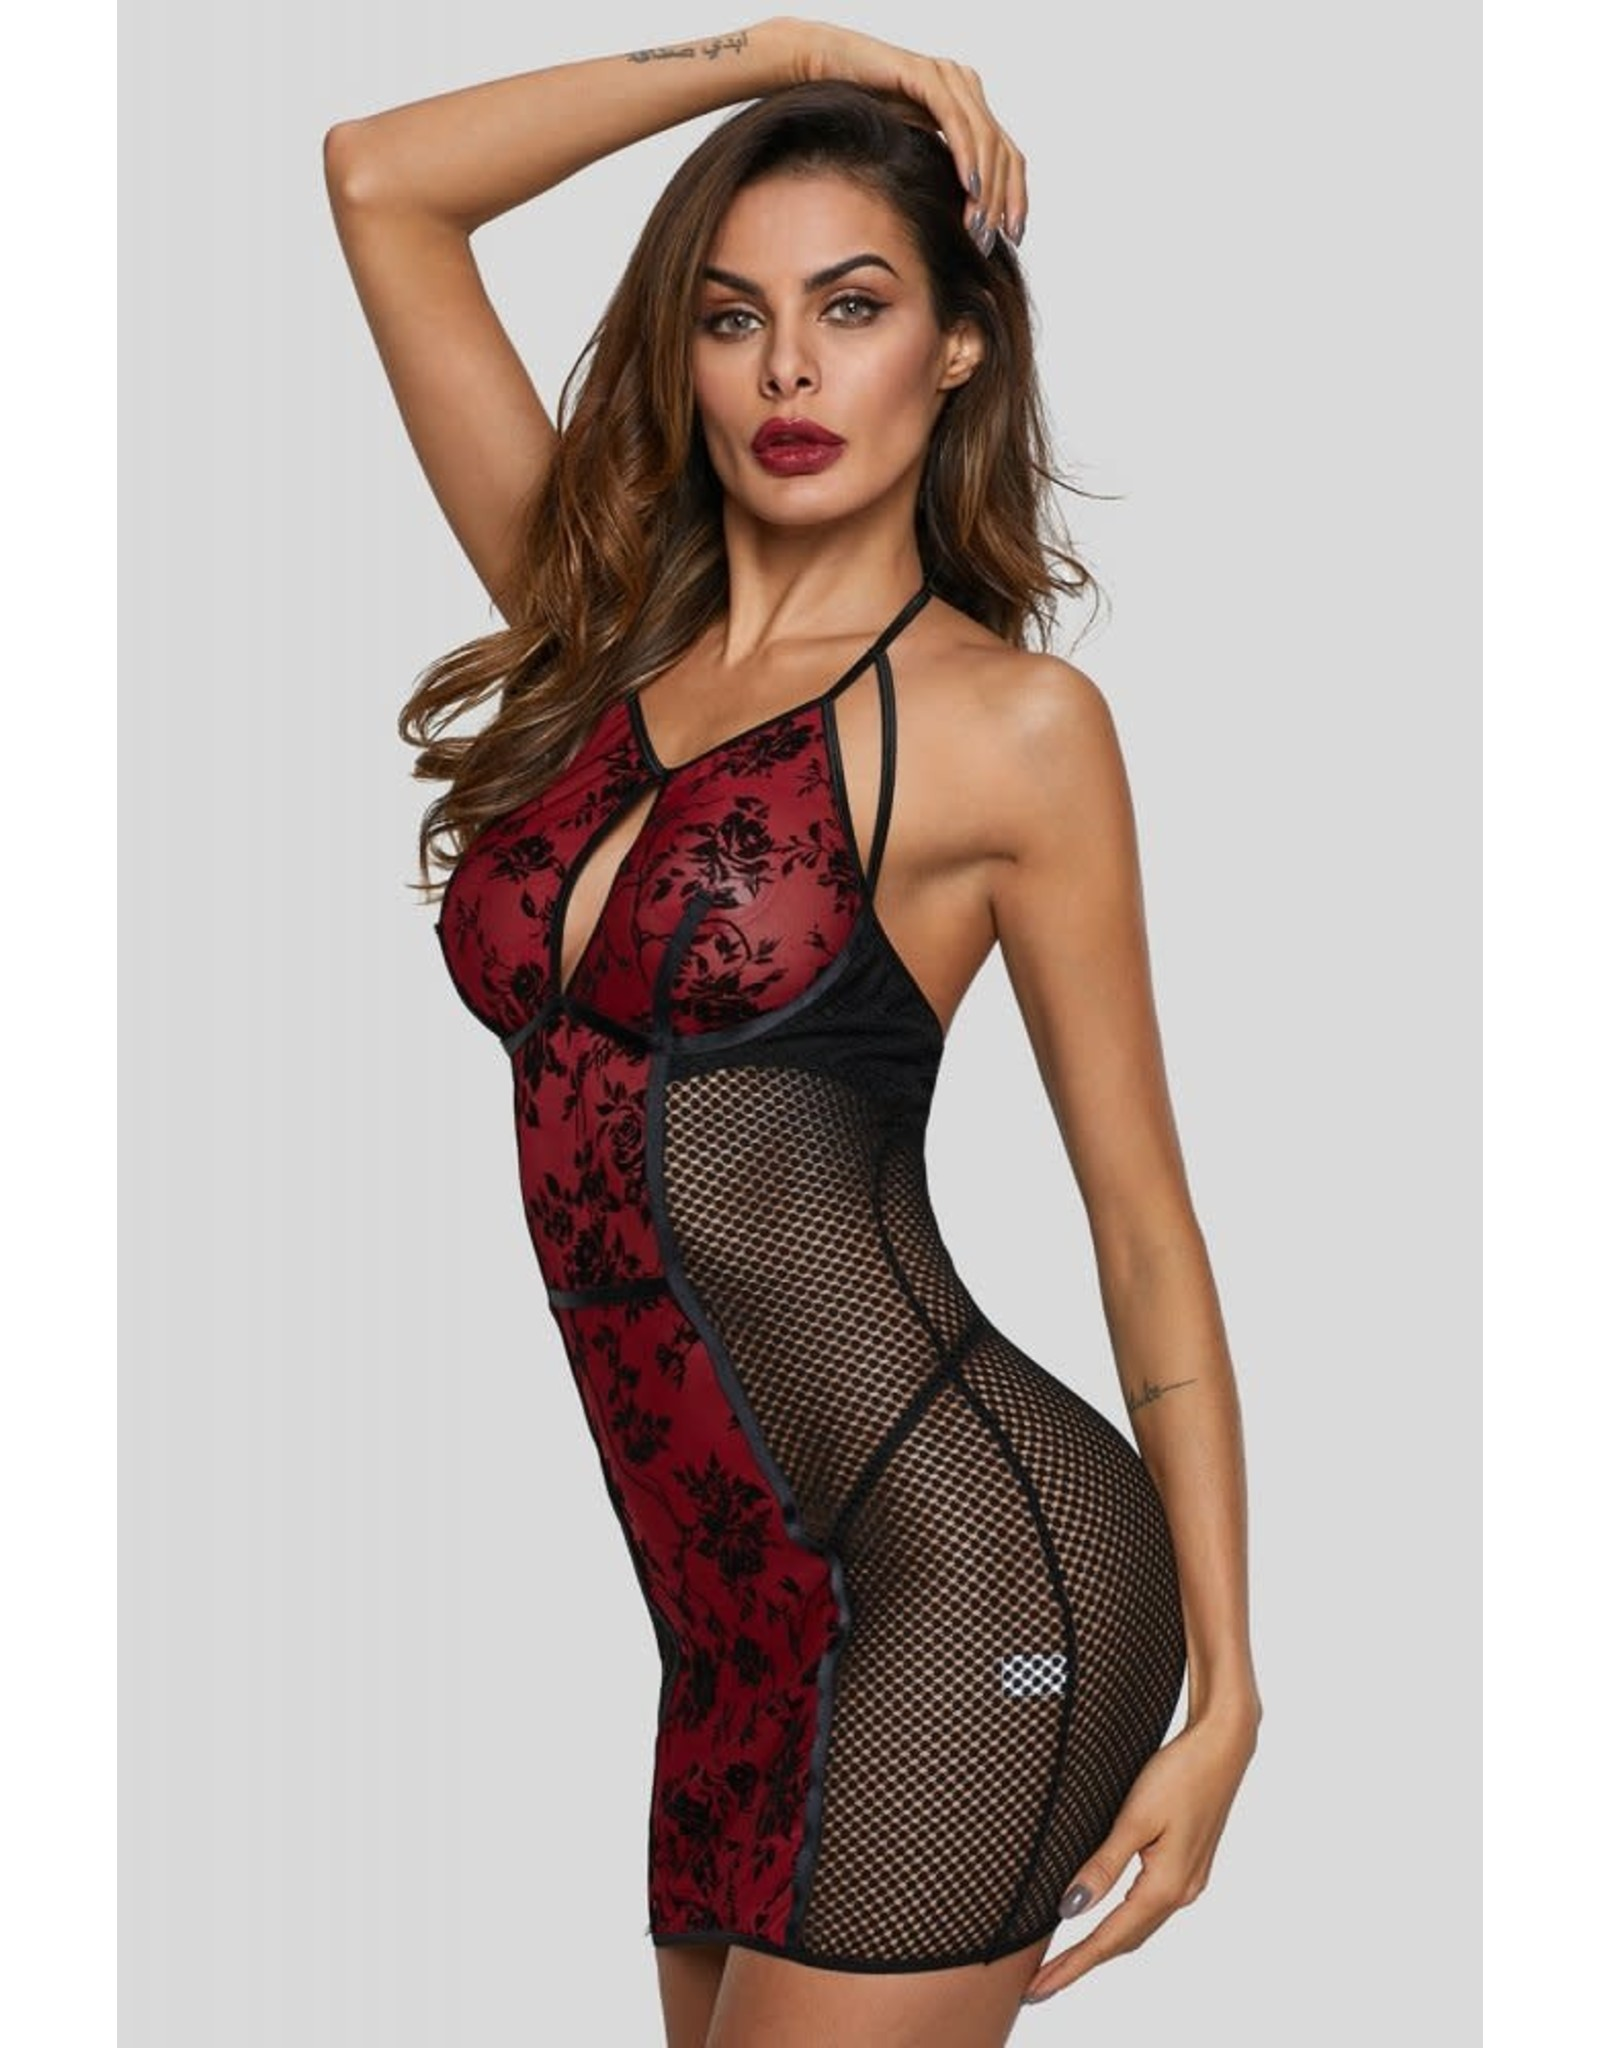 JULIET ROSES CHEMISE IN BLACK - SMALL (4-6)